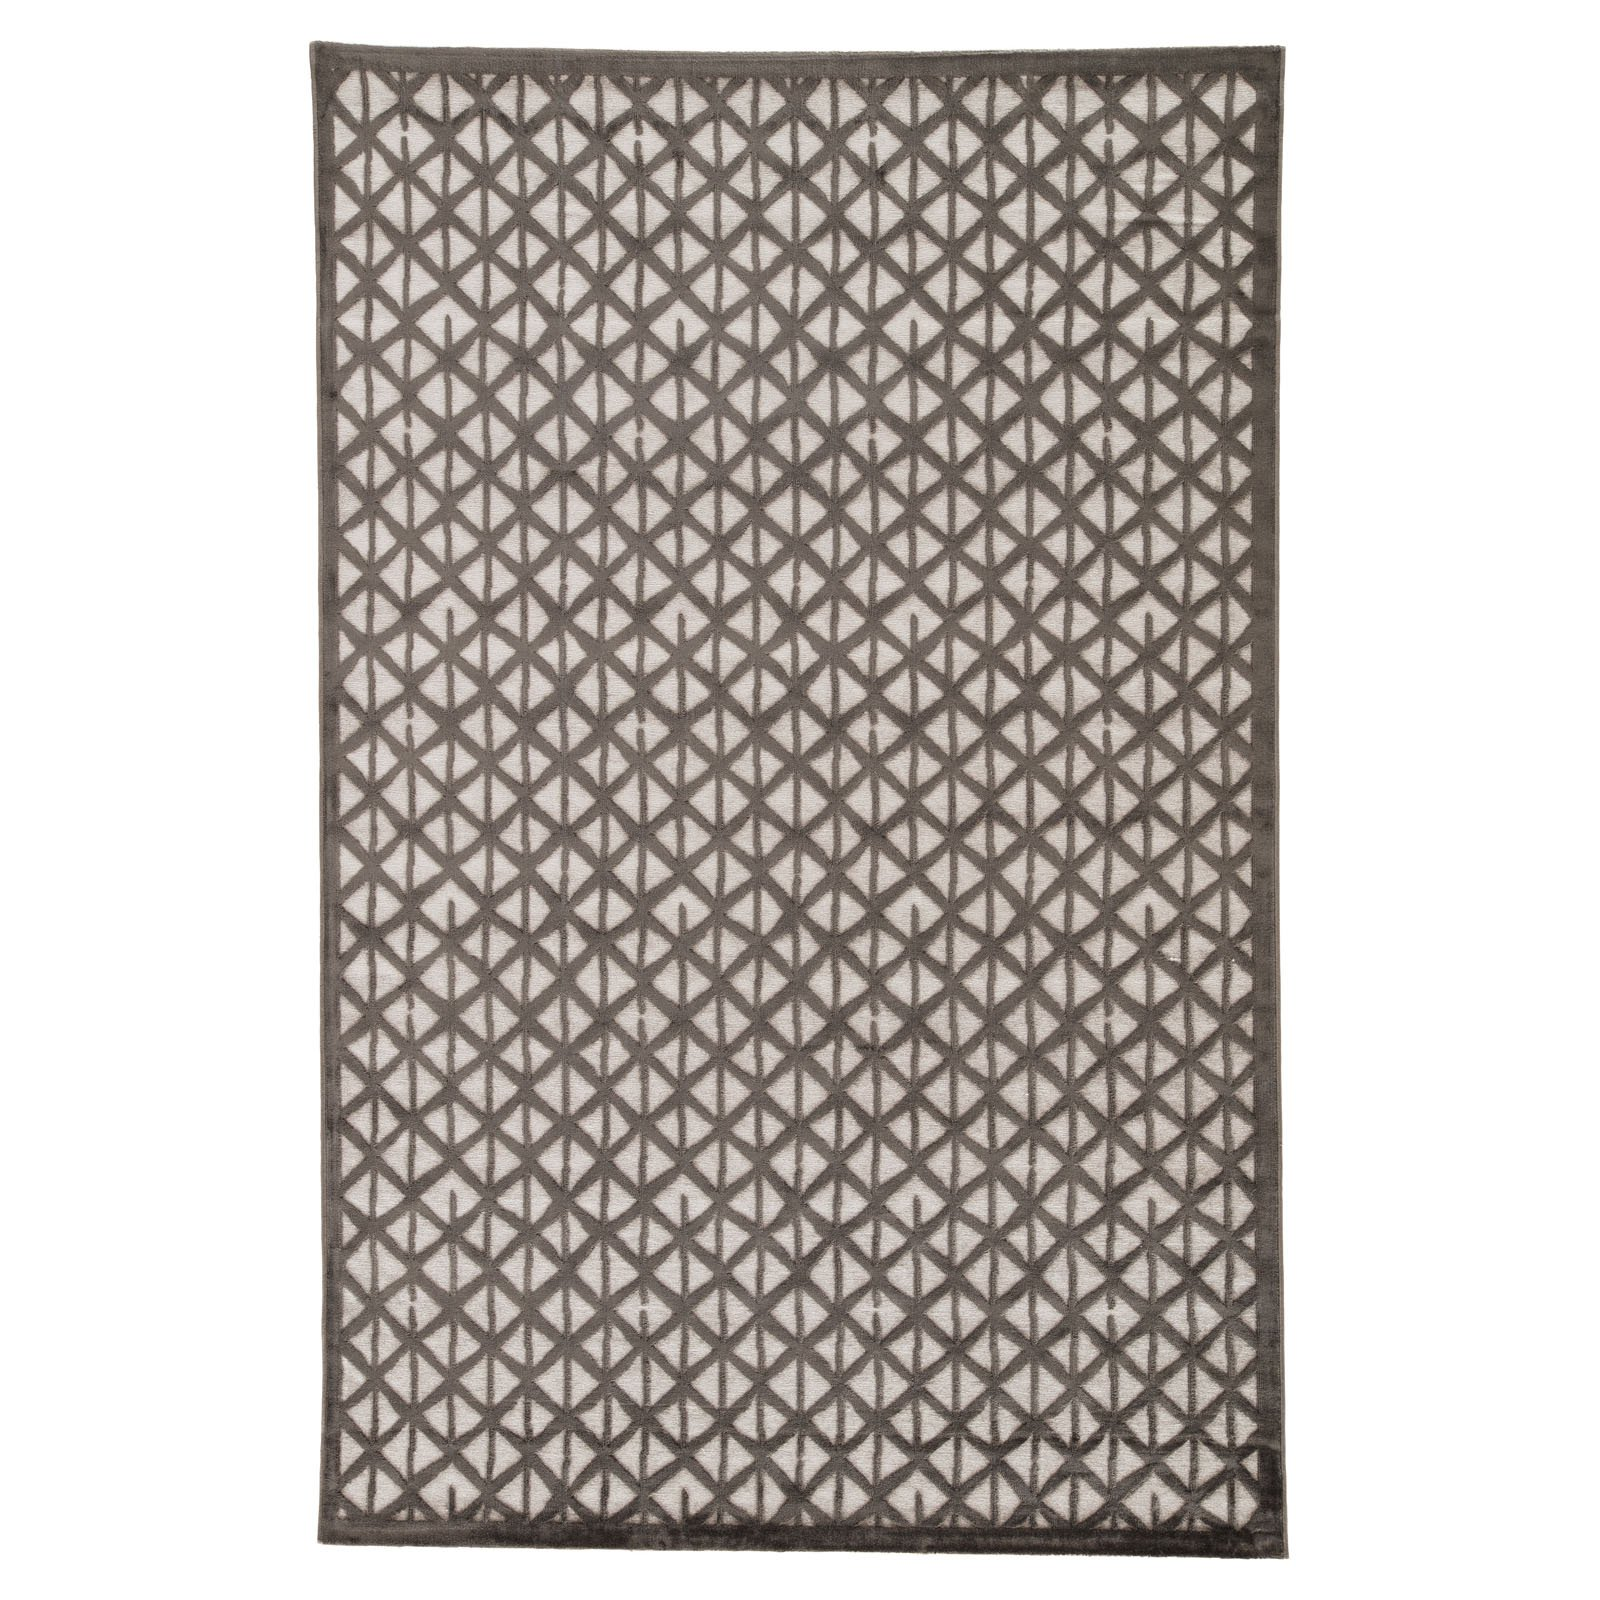 Jaipur Rugs Fables Diamond Trellis Indoor Area Rug